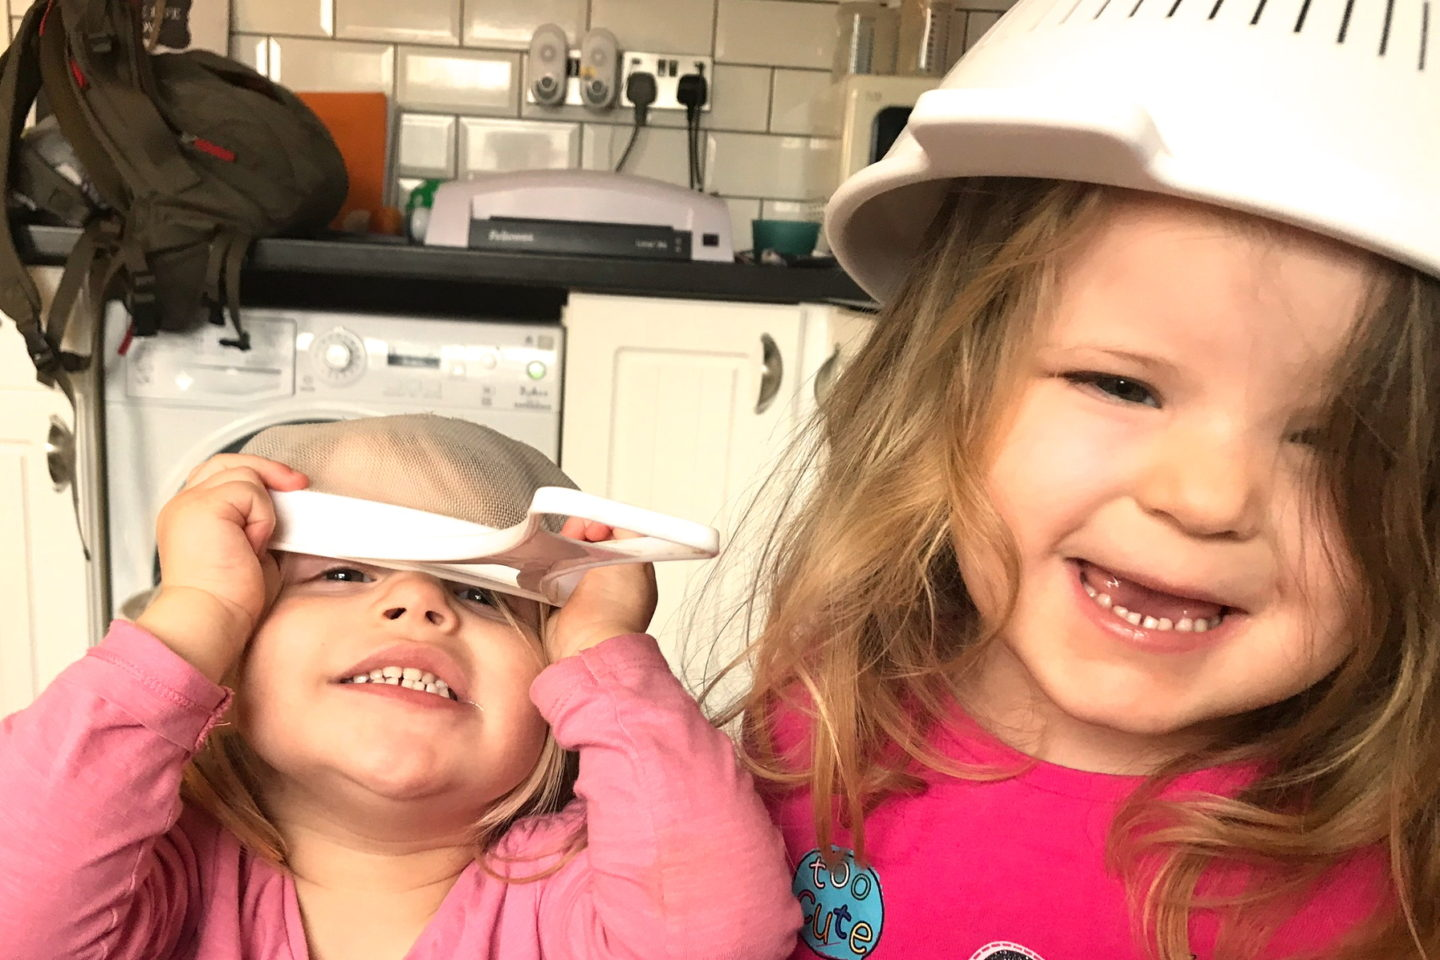 two young sisters laughing with sieves on their heads